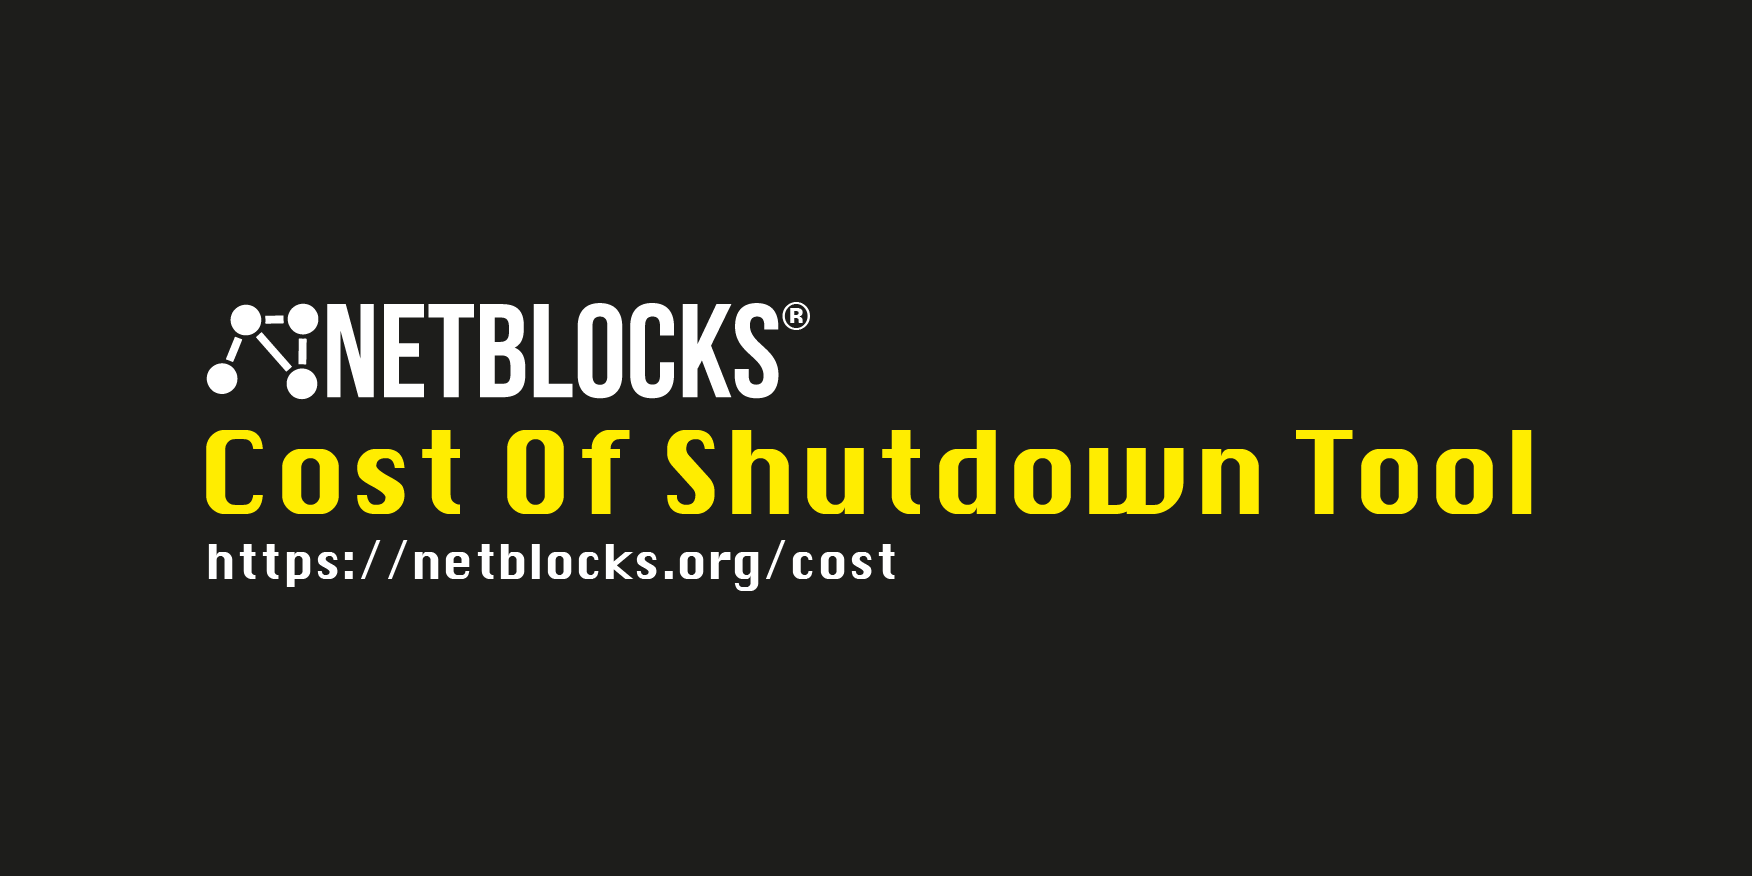 COST: The Cost of Shutdown Tool - NetBlocks